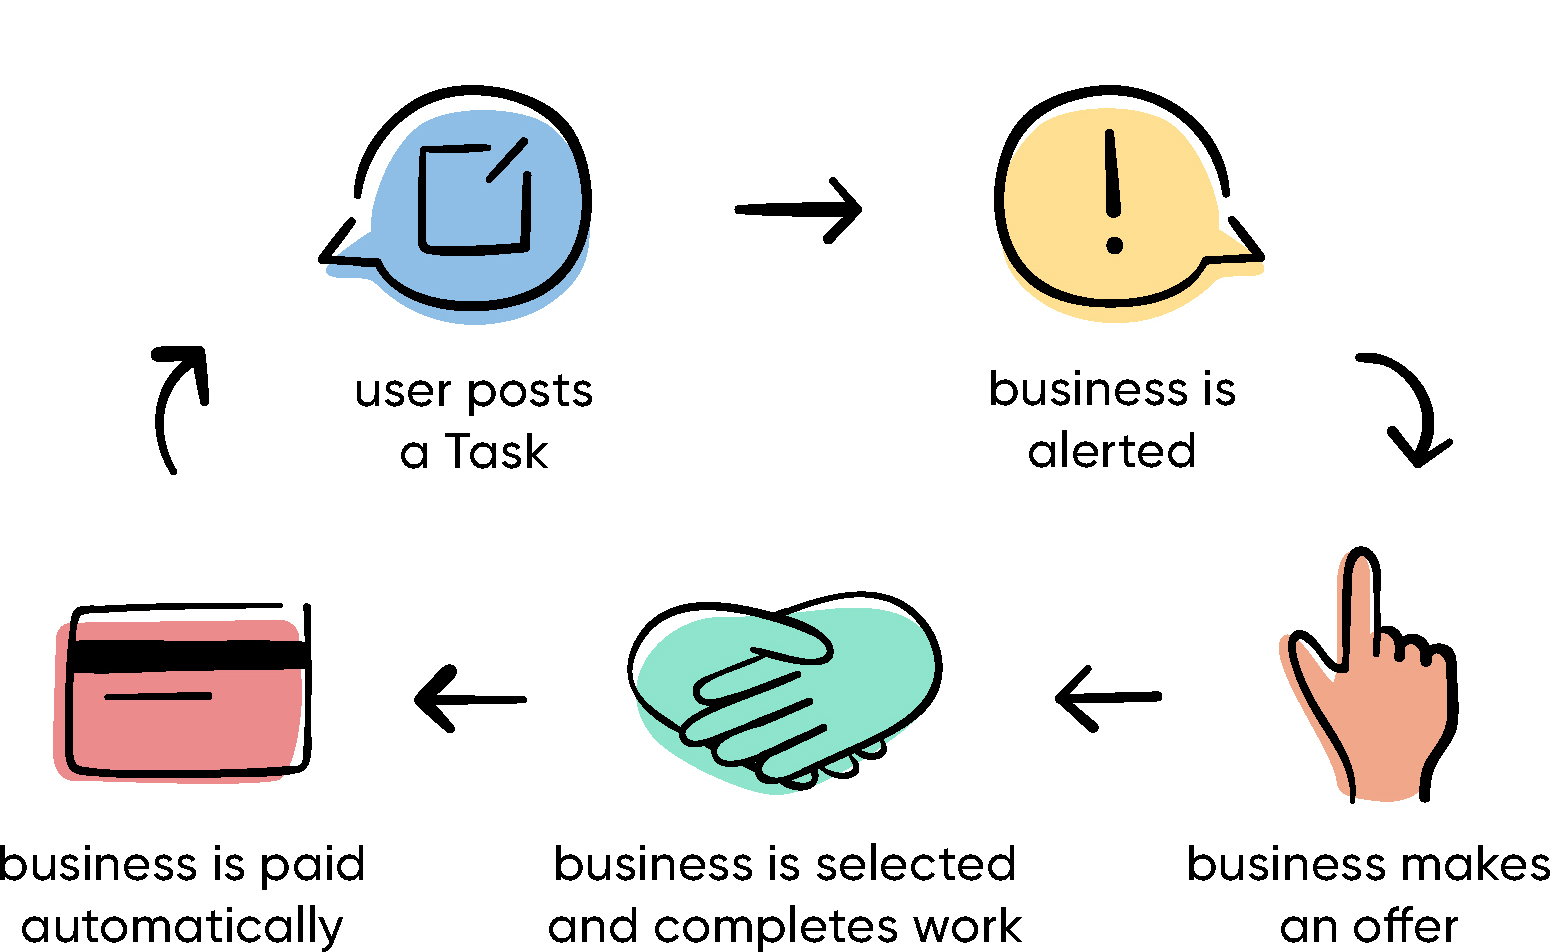 MyTask - Business cycle